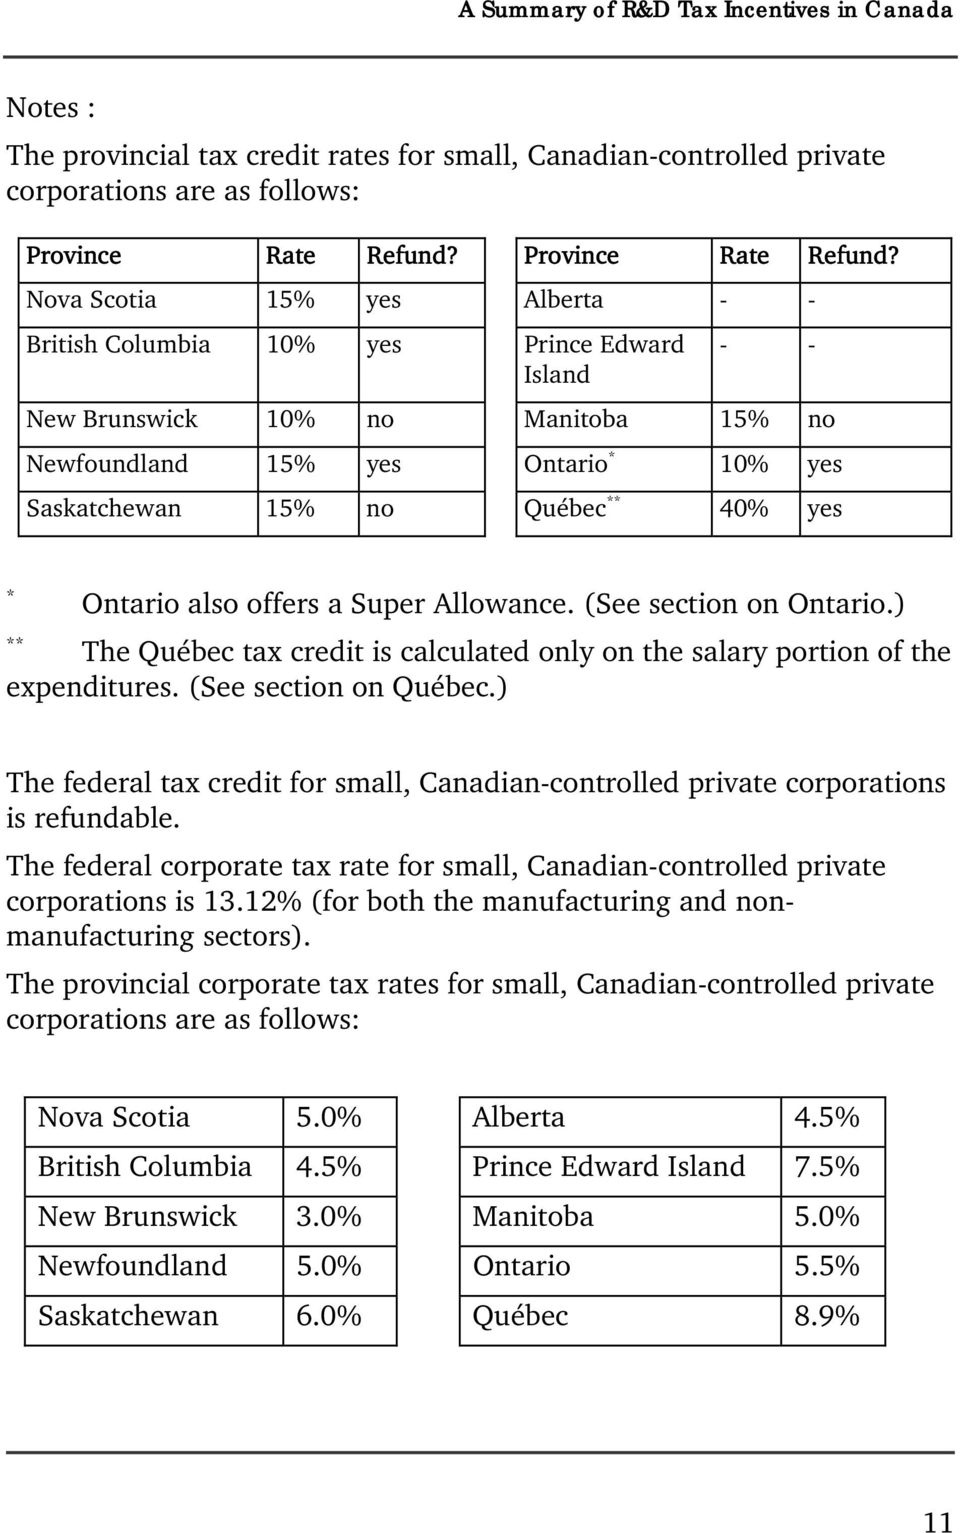 ** 40% yes Refund? * Ontario also offers a Super Allowance. (See section on Ontario.) ** The Québec tax credit is calculated only on the salary portion of the expenditures. (See section on Québec.